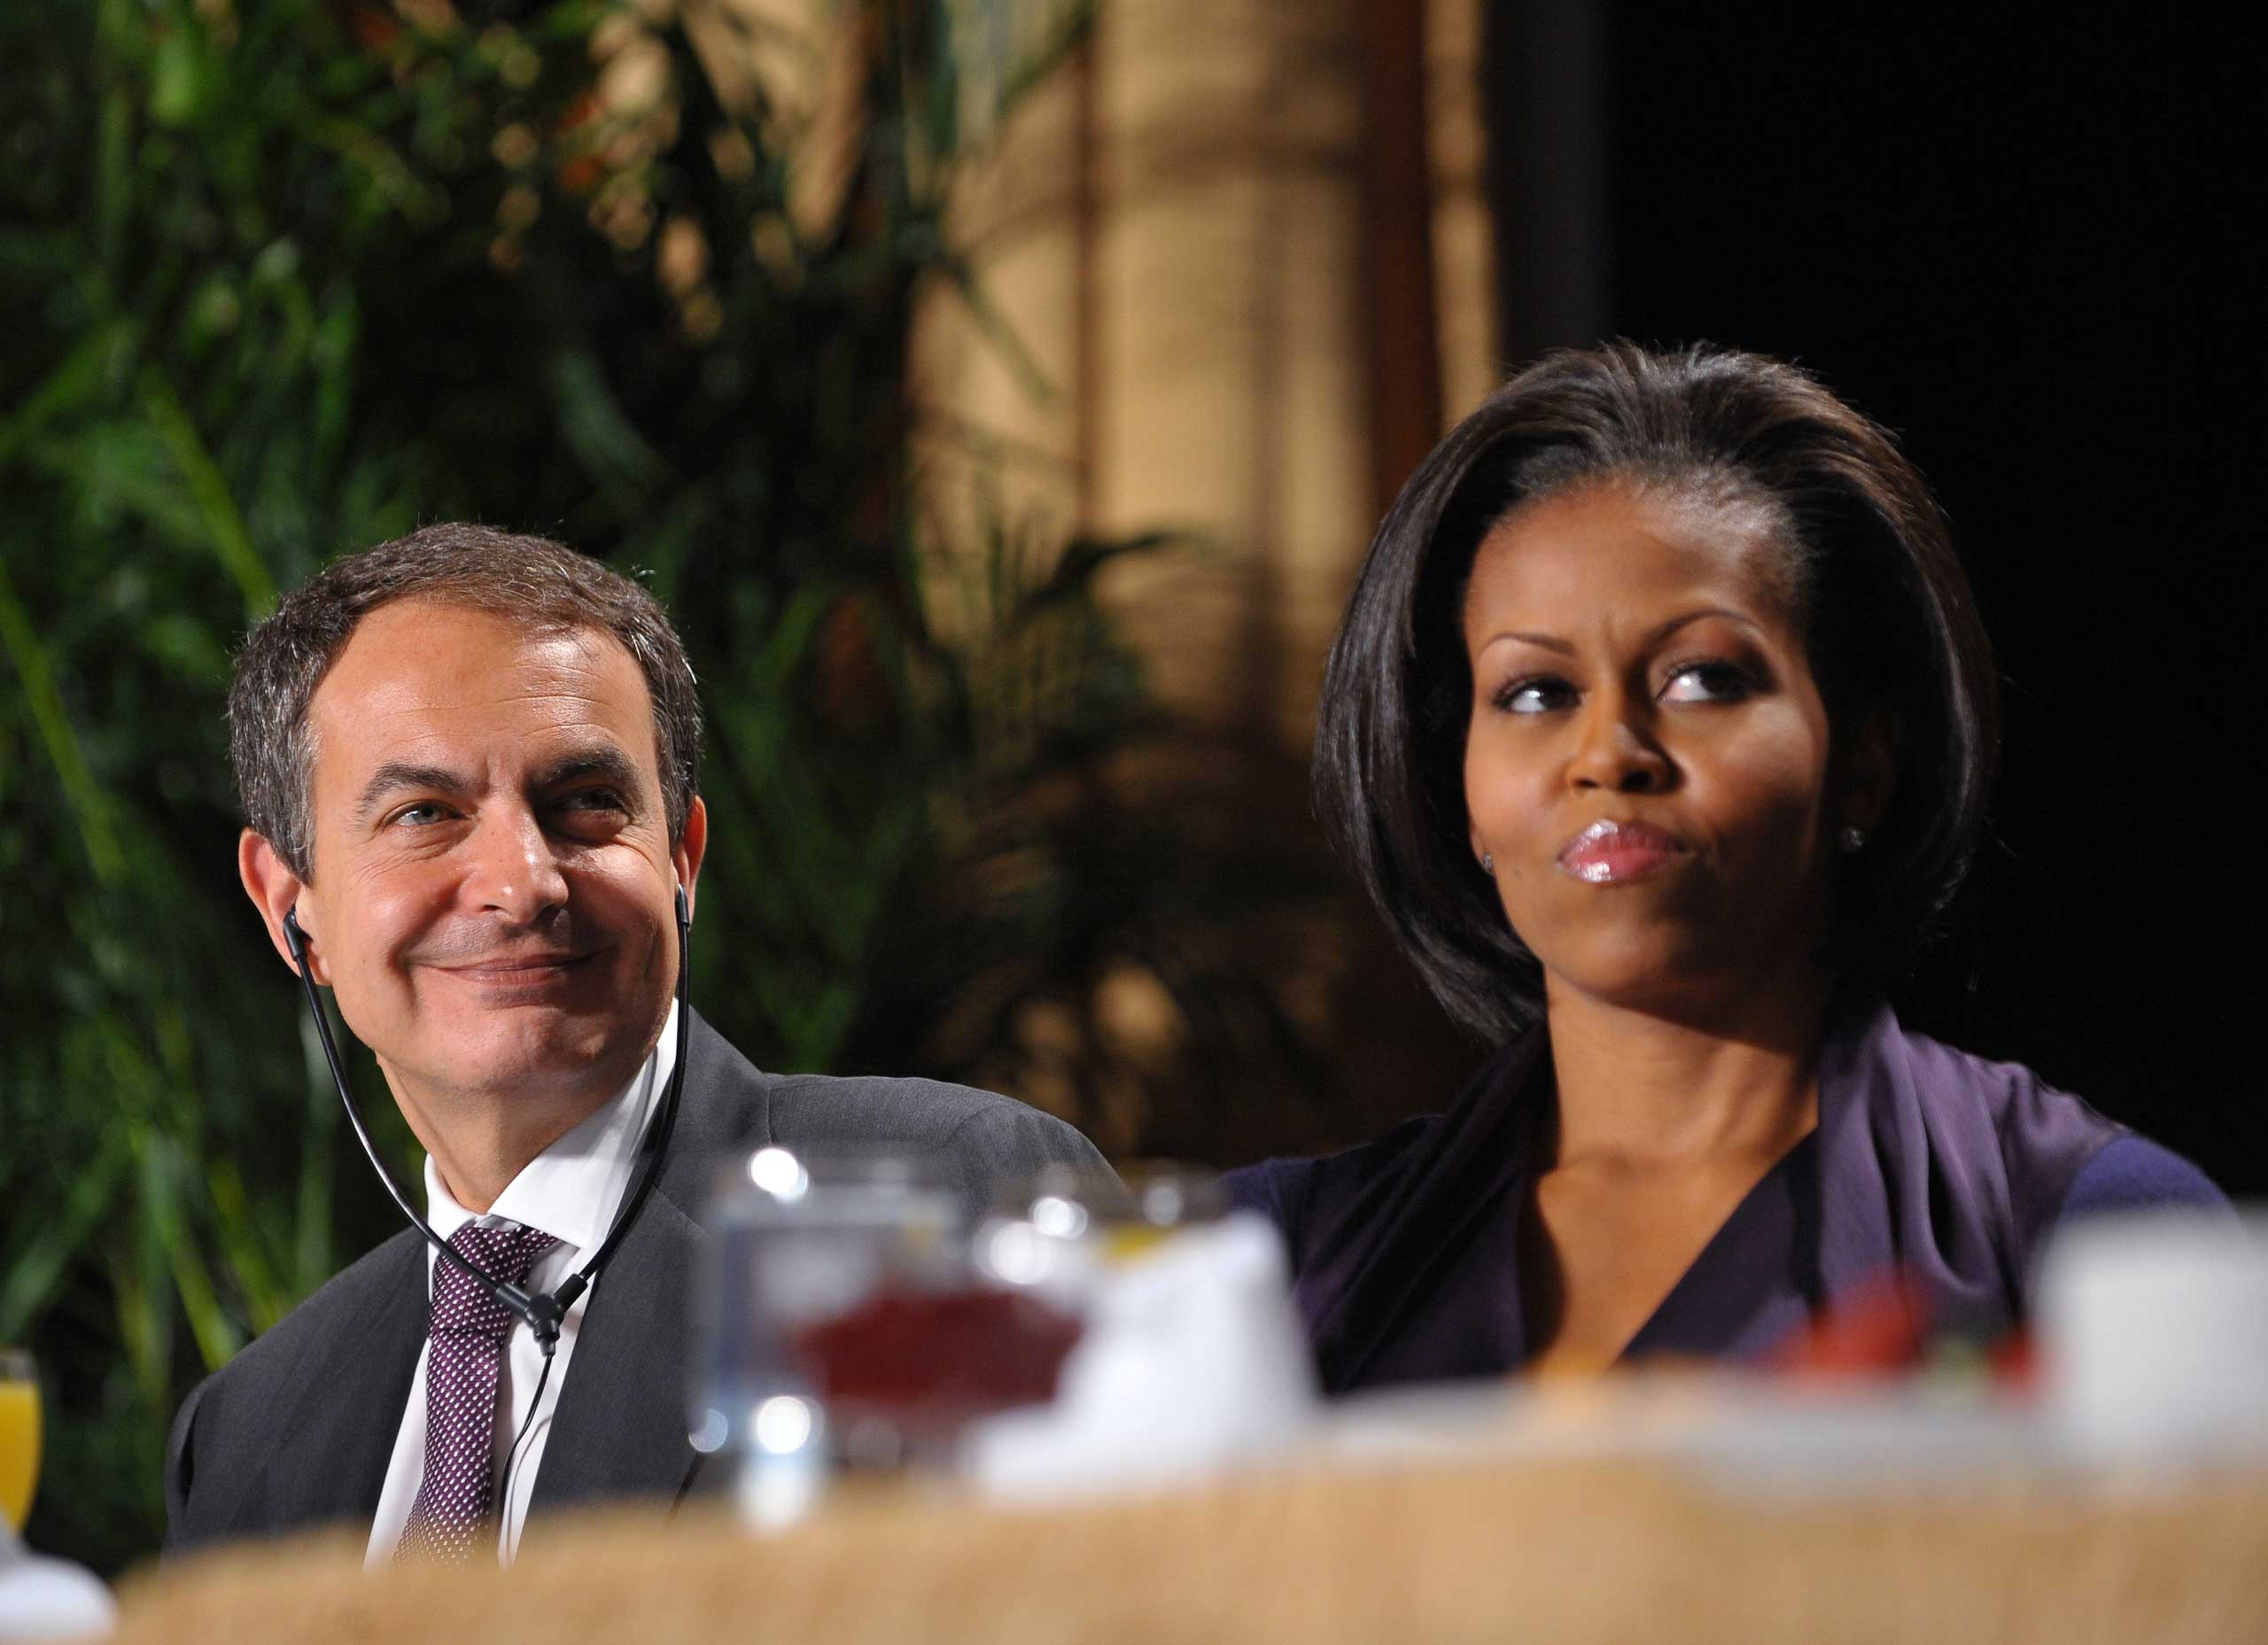 Michelle Obama sits with Spanish Prime Minister Jose Luis Rodriguez Zapatero, who was the guest speaker at the 2010 National Prayer Breakfast.